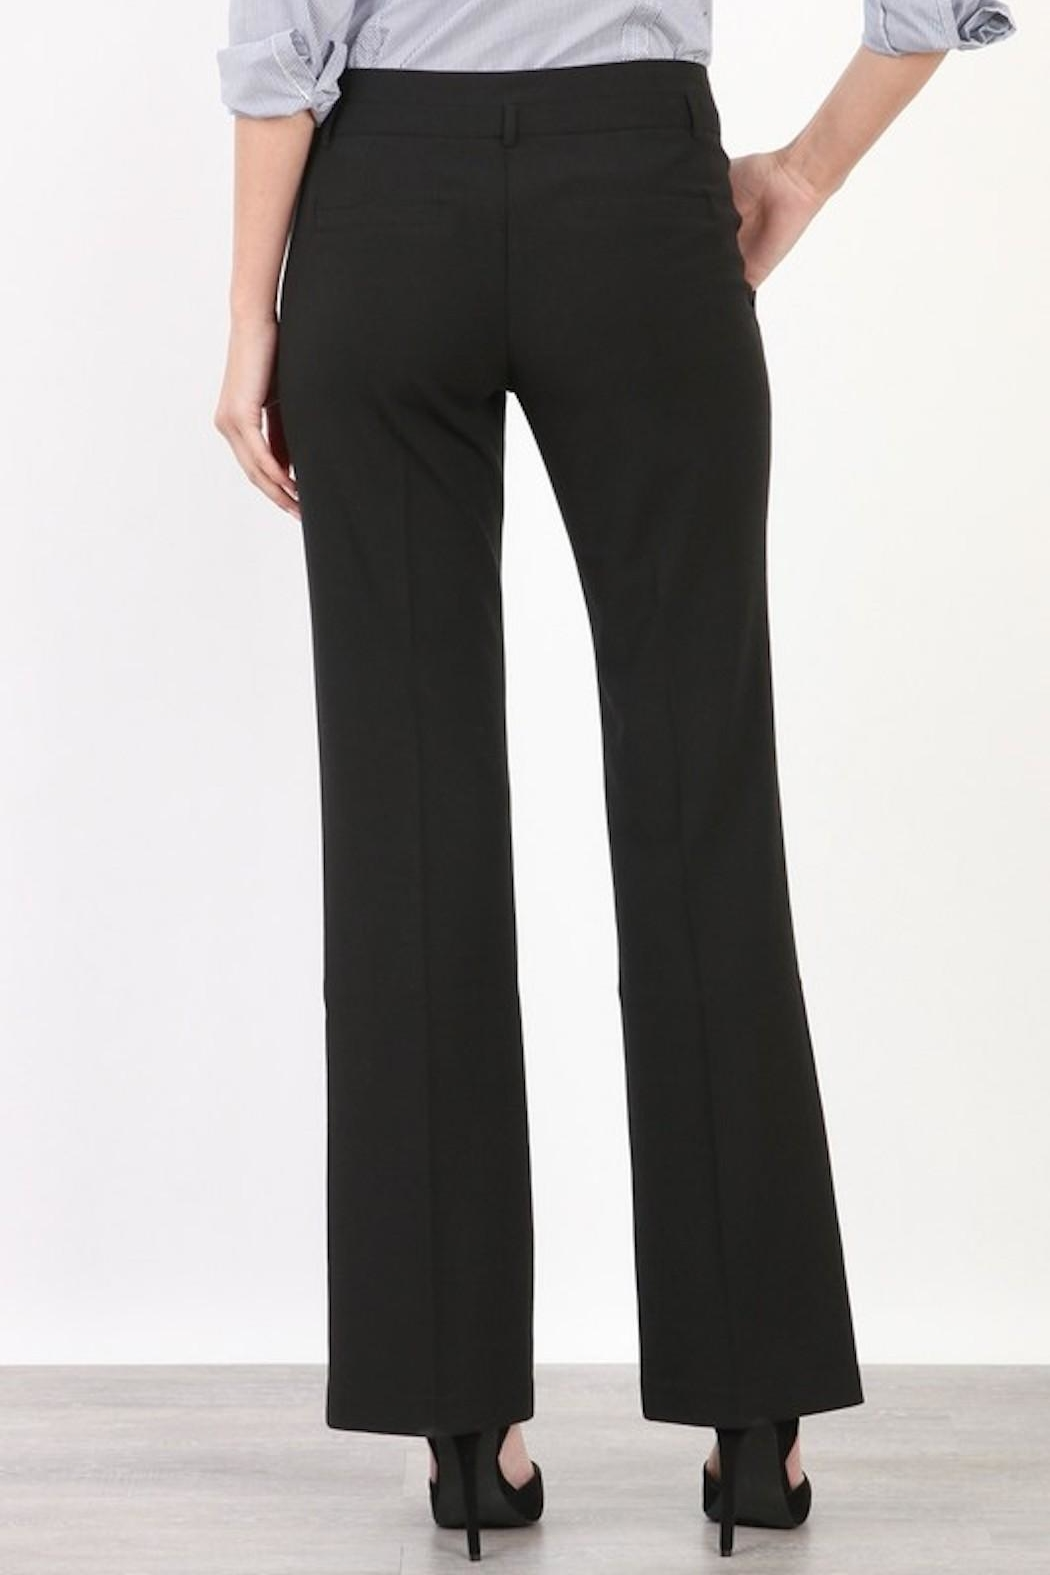 Mary Clan Bootcut Work Trousers - Main Image